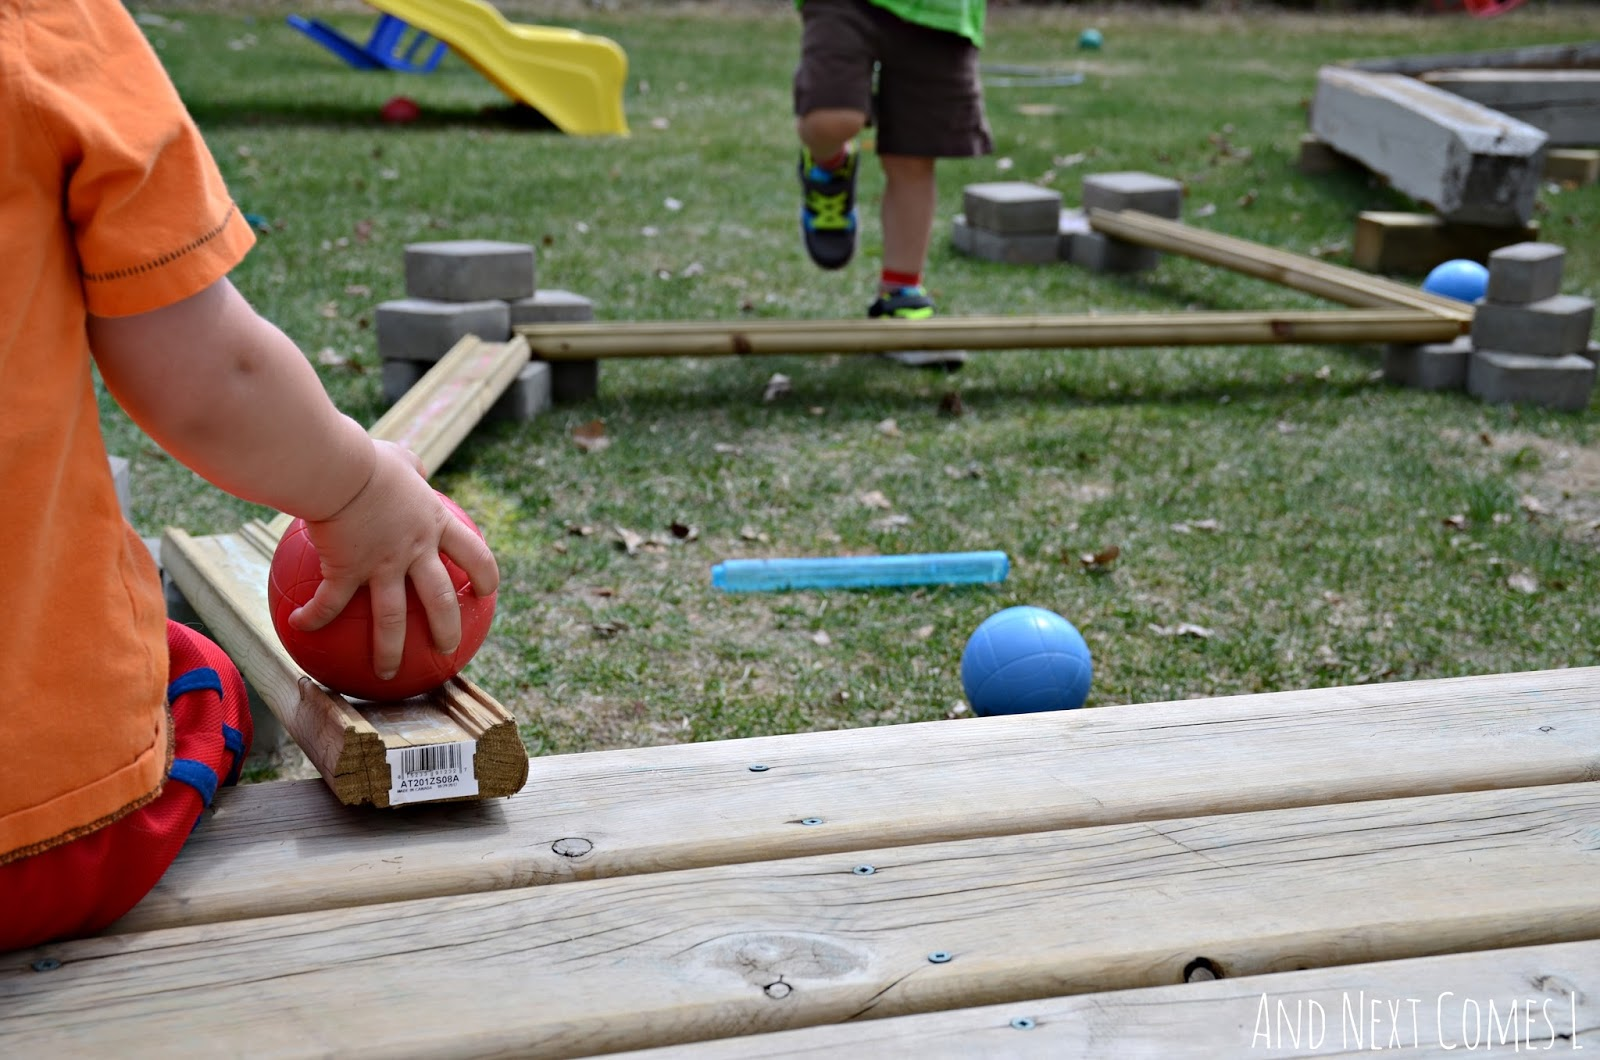 diy outdoor ball run building with loose parts and next comes l